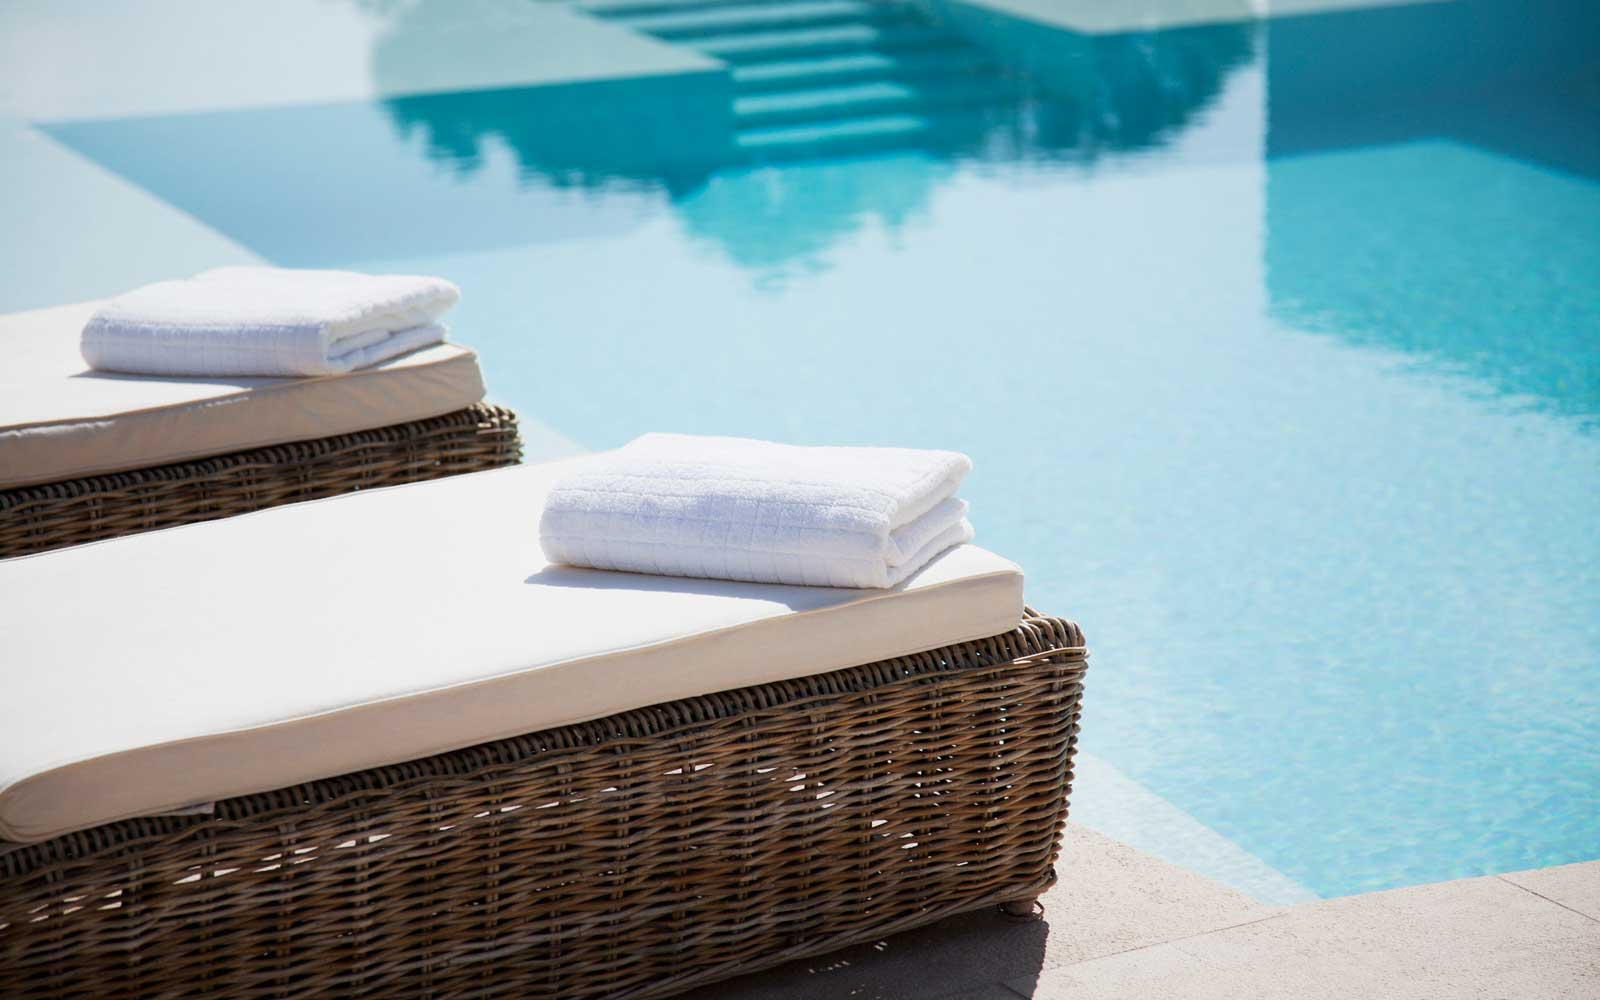 Folded towels on lounge chairs beside pool